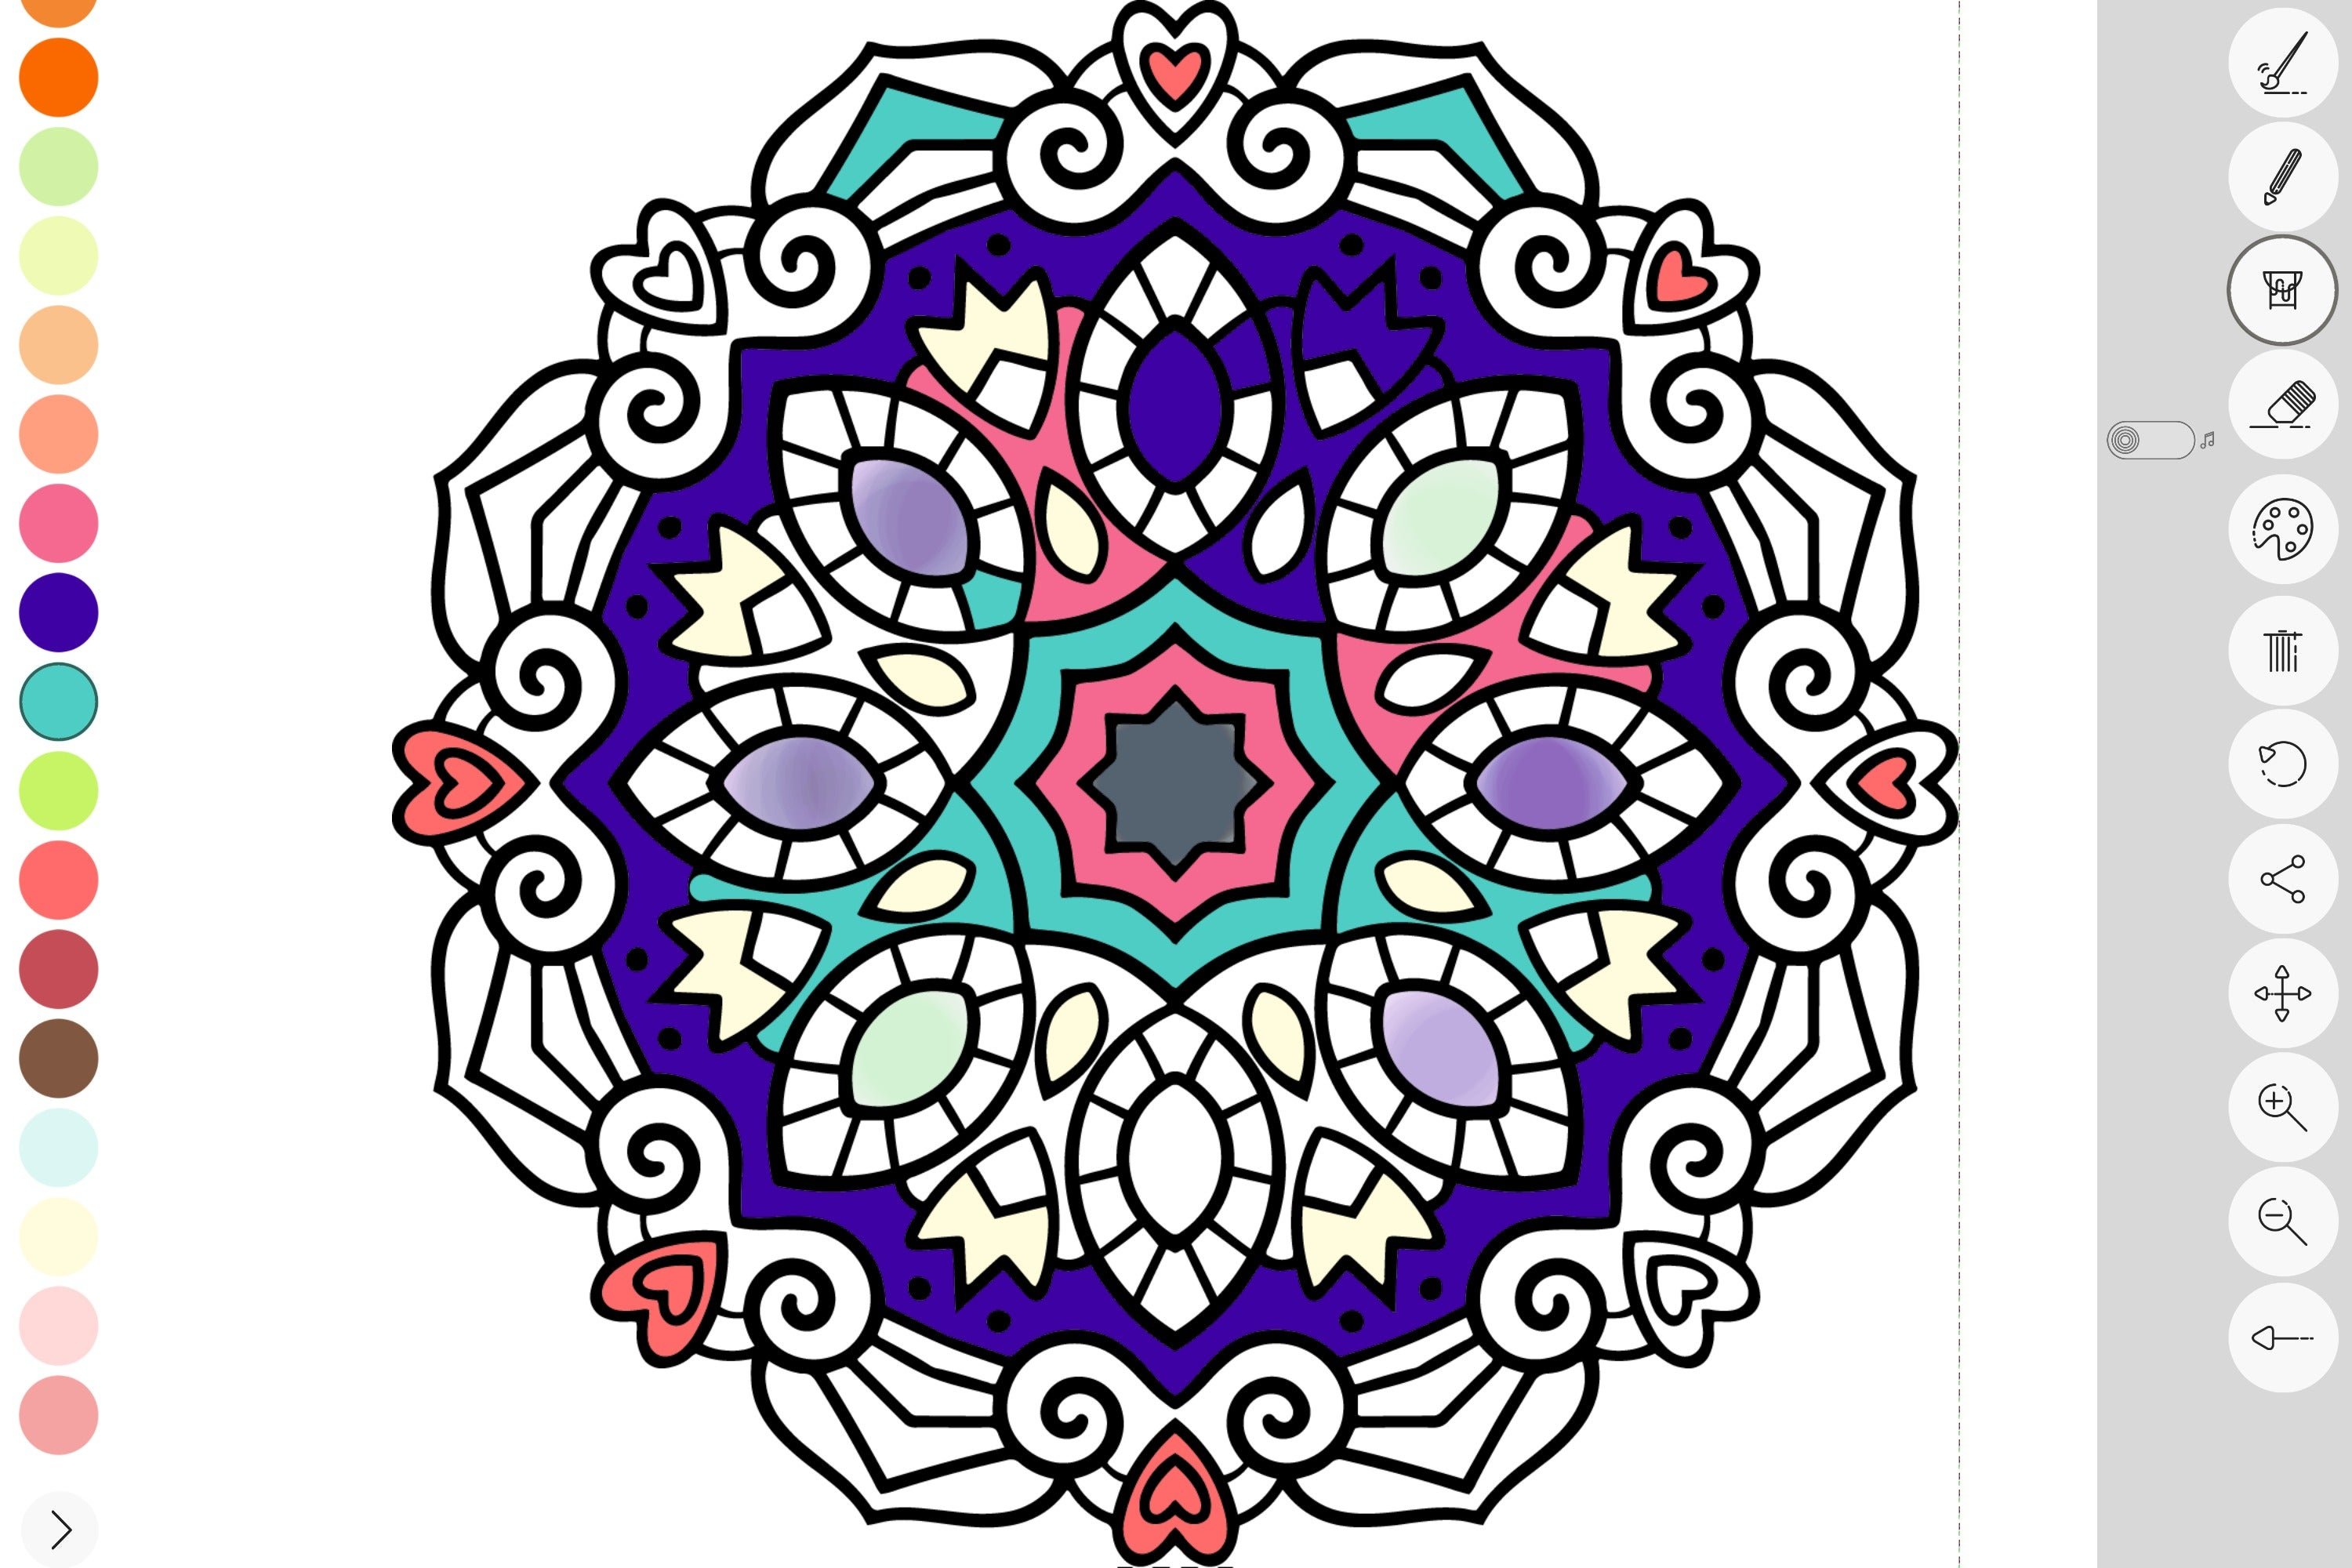 Zen coloring books for adults app - Zen Coloring Book For Adults